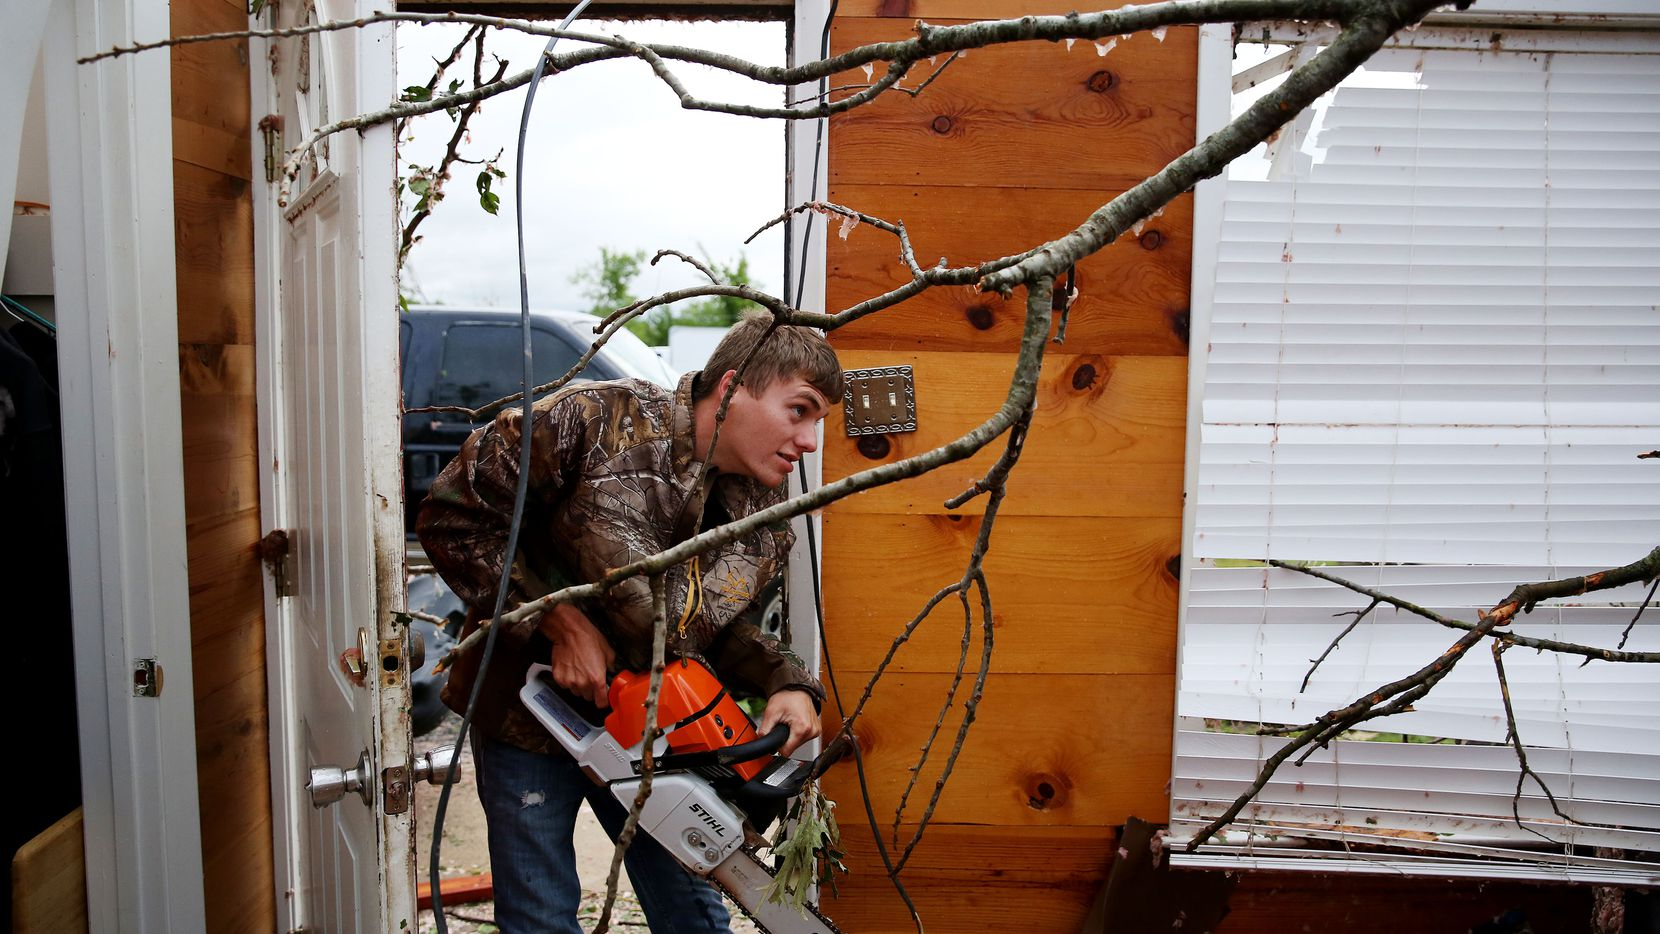 Brandon Sherwood prepares to cut down a tree that fell in the living room belonging to his girlfriend family along County Road 1910 after a tornado impacted Fruitvale, Texas on Sunday April 30, 2017.  (Andy Jacobsohn/The Dallas Morning News)